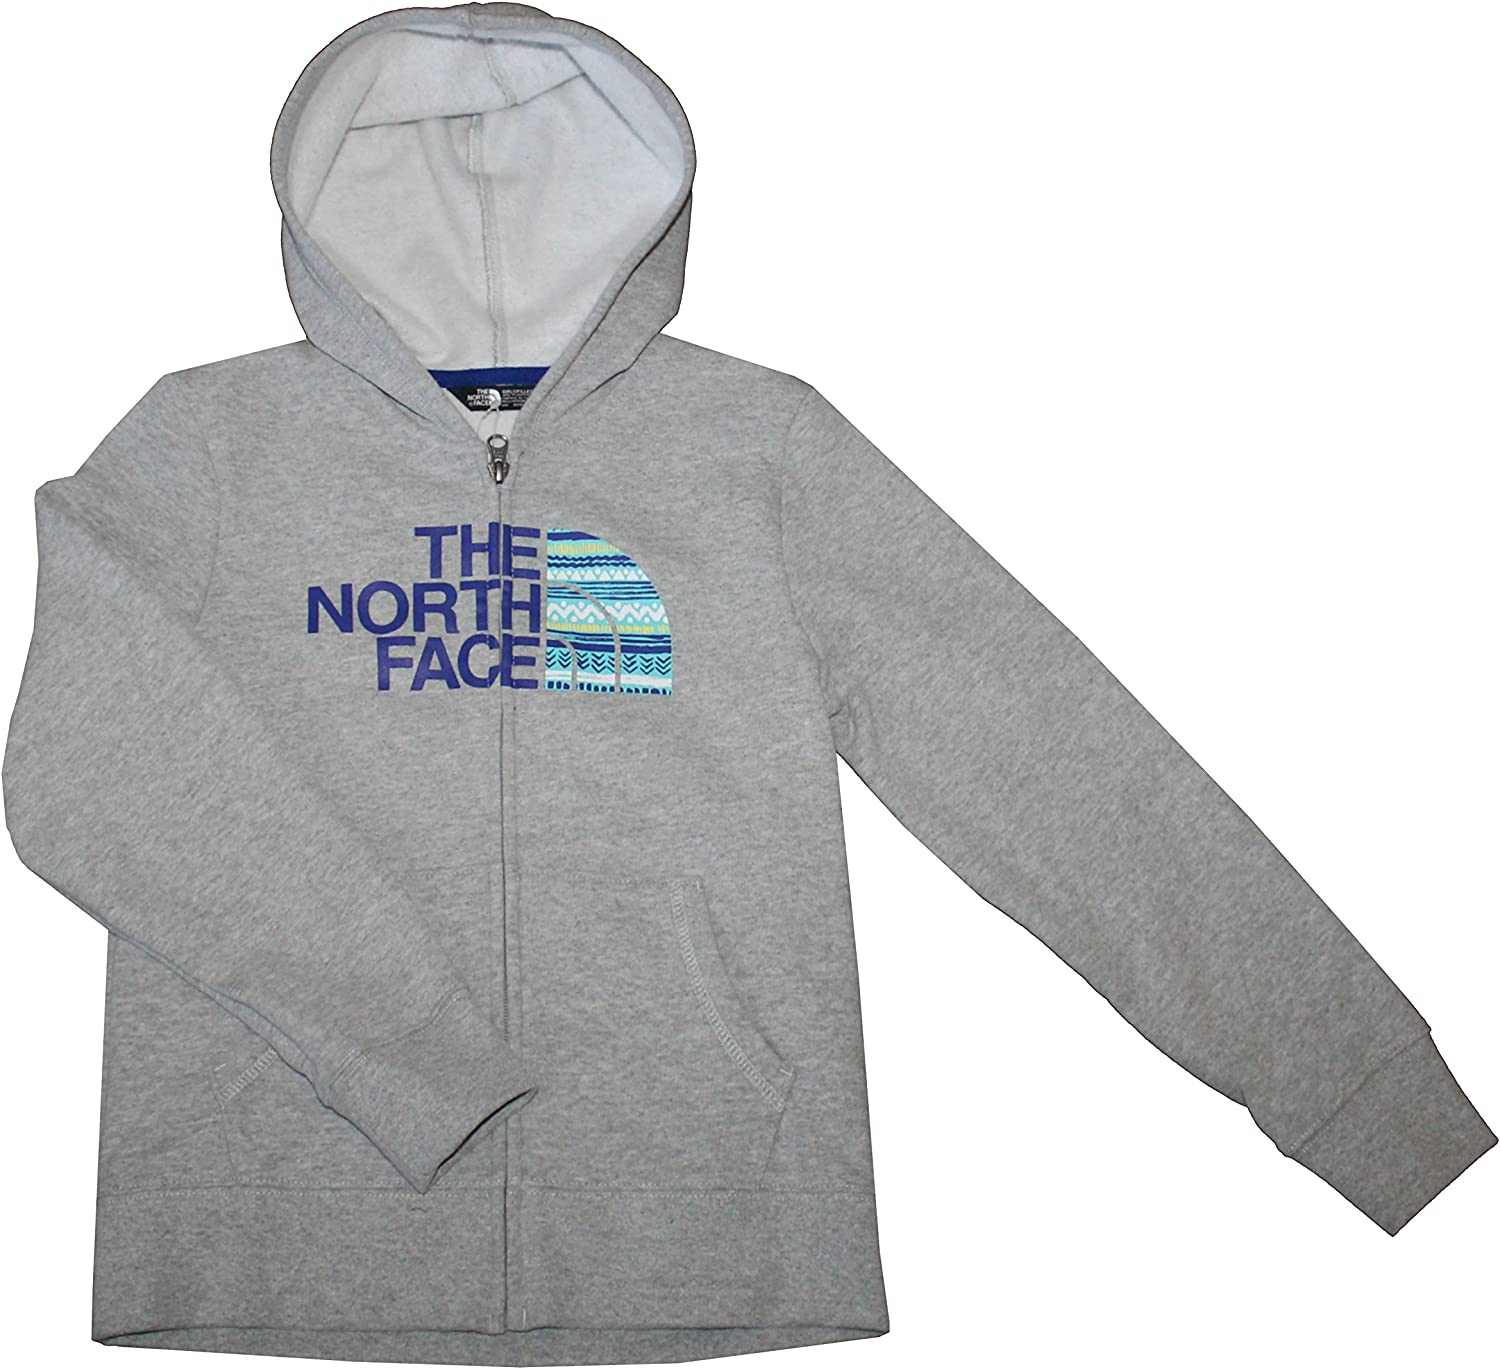 The North Face Logowear Youth Girls Full Zip Hoodie